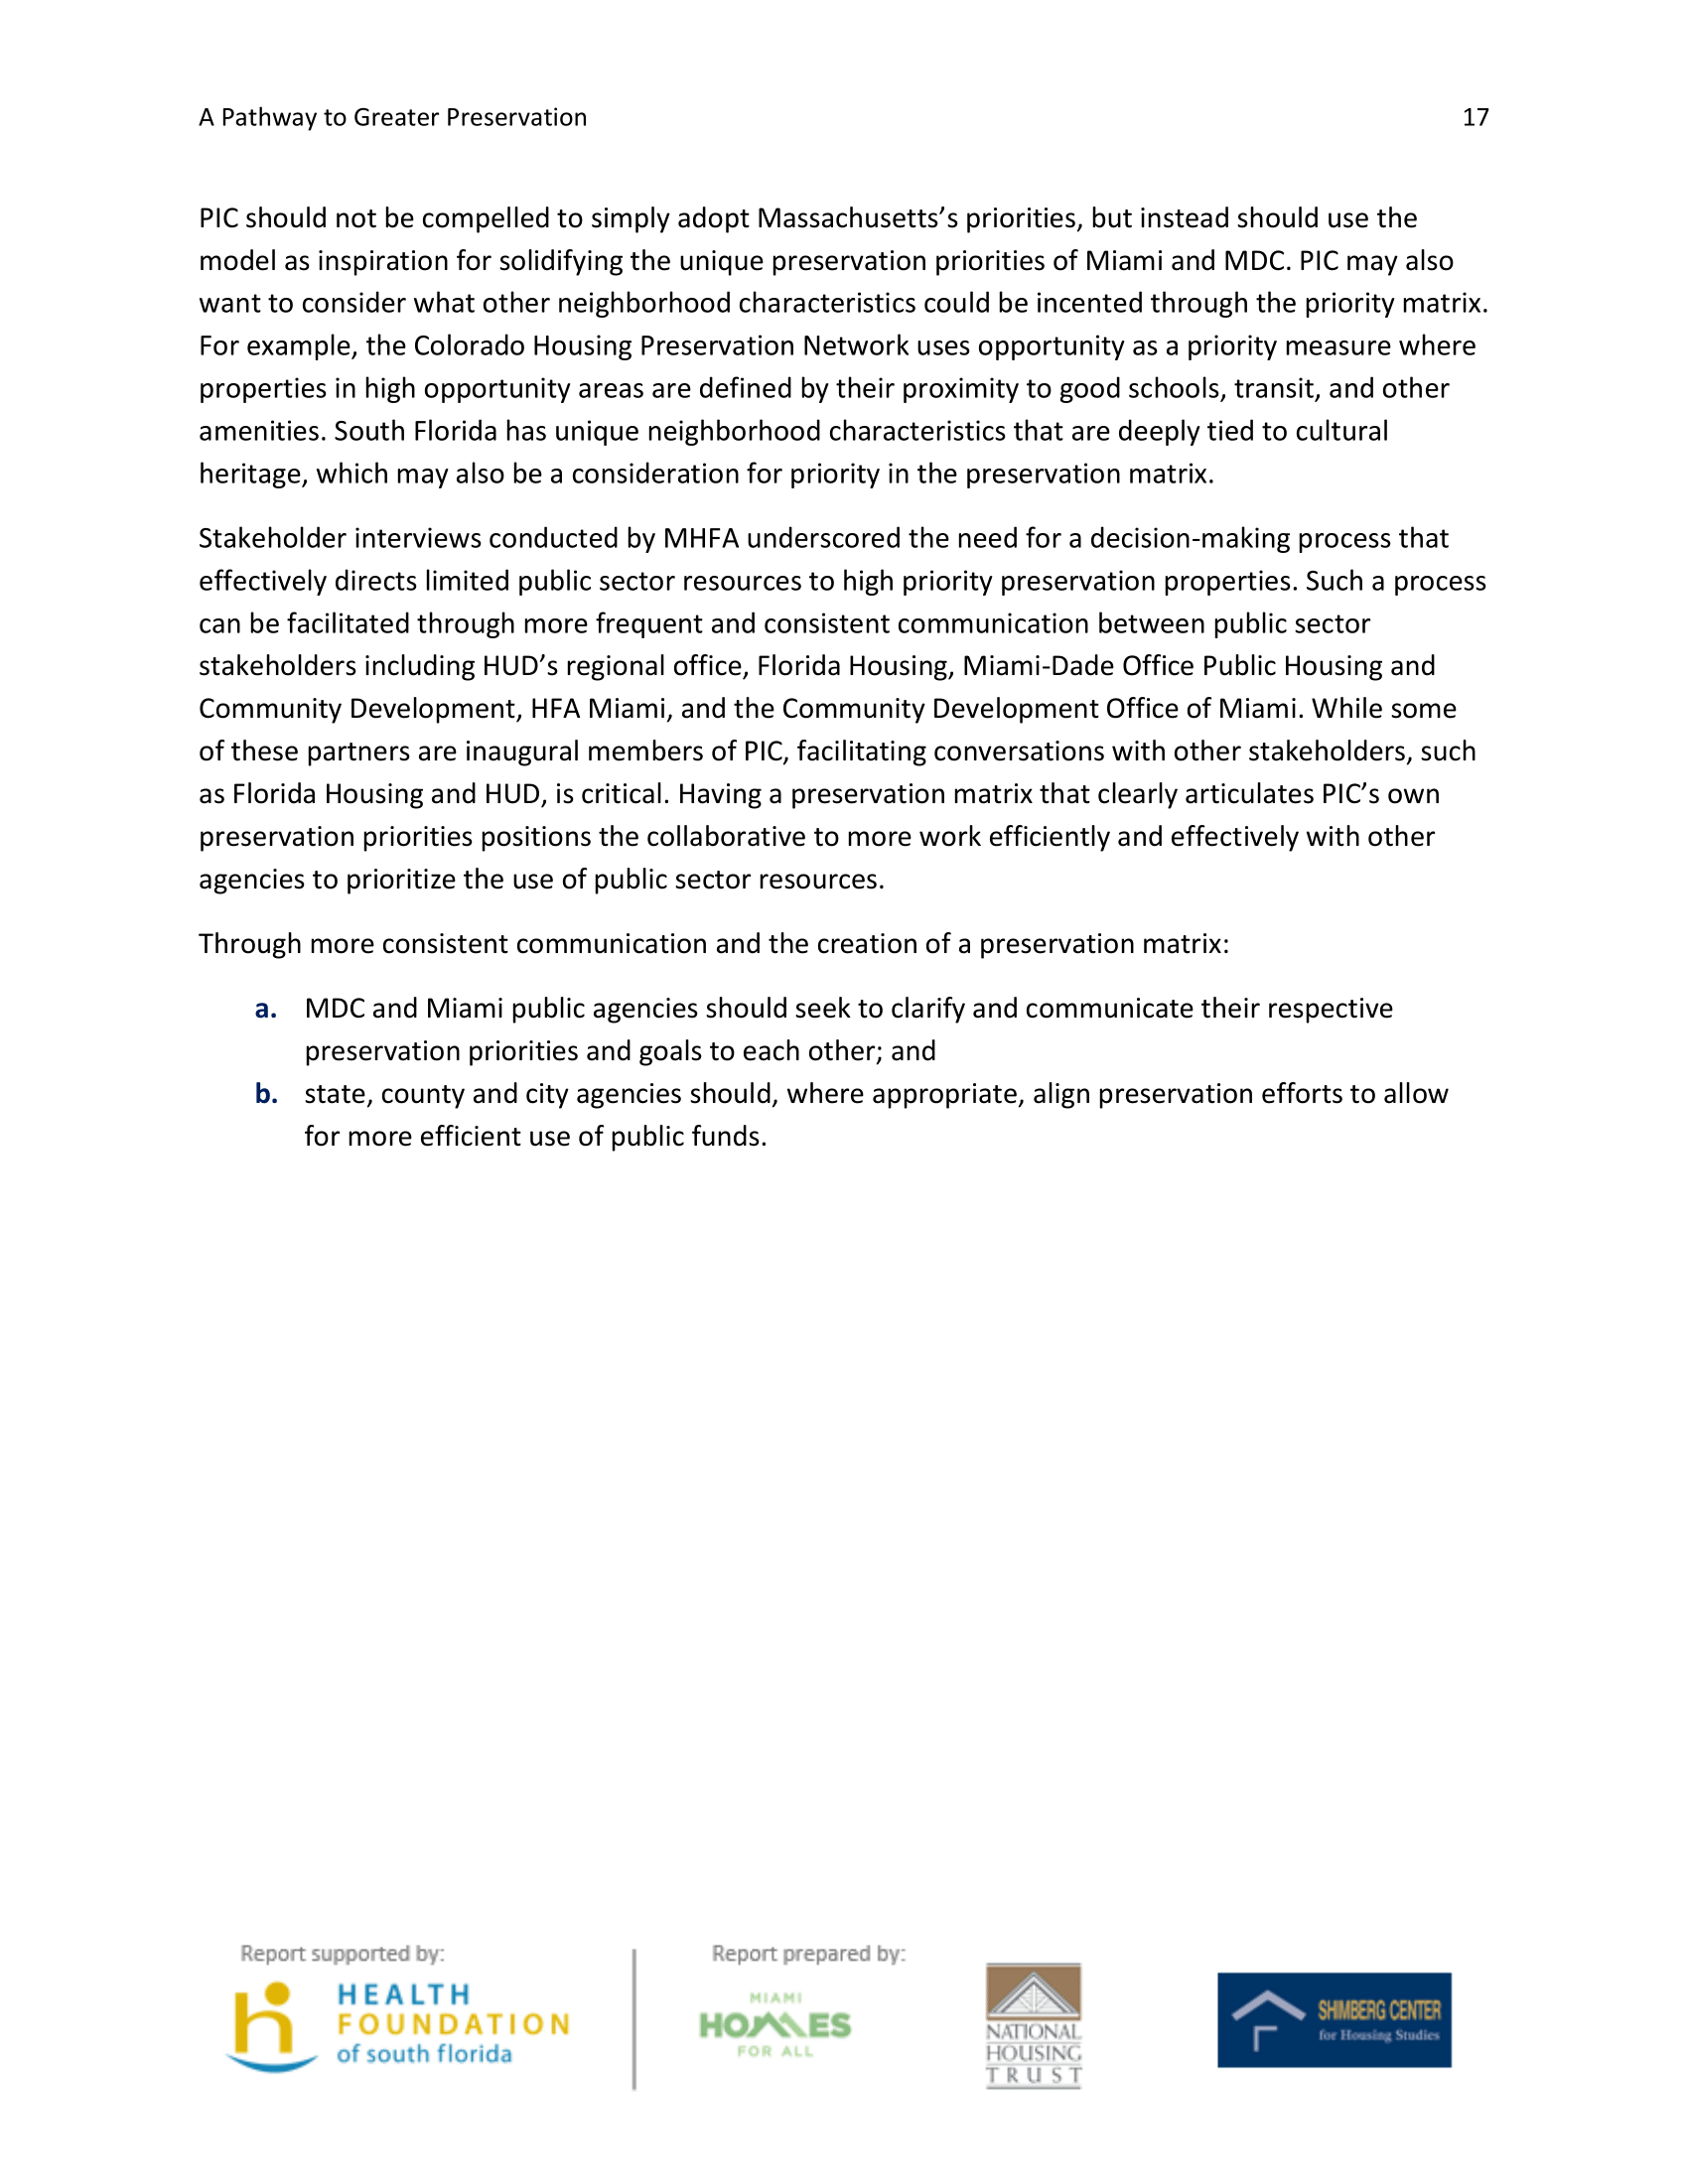 A Pathway to Greater Preservation - February 2018-25.png